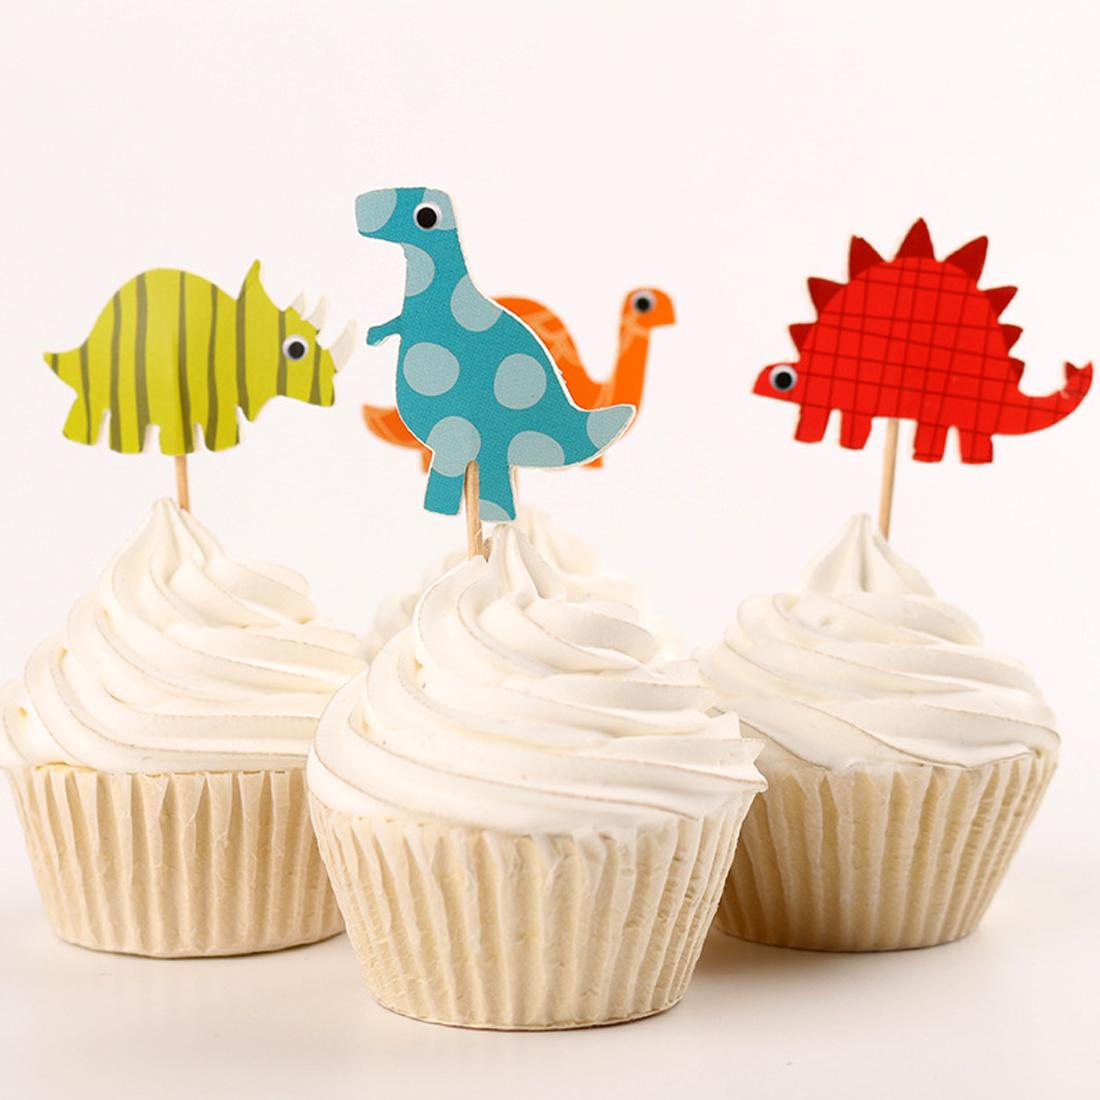 Best Dinosaur Cupcake Cake Decor Baby Shower Supplies Child Kids Birthday Party Cake Baking Party Decoration Italian Party Decorations Items For